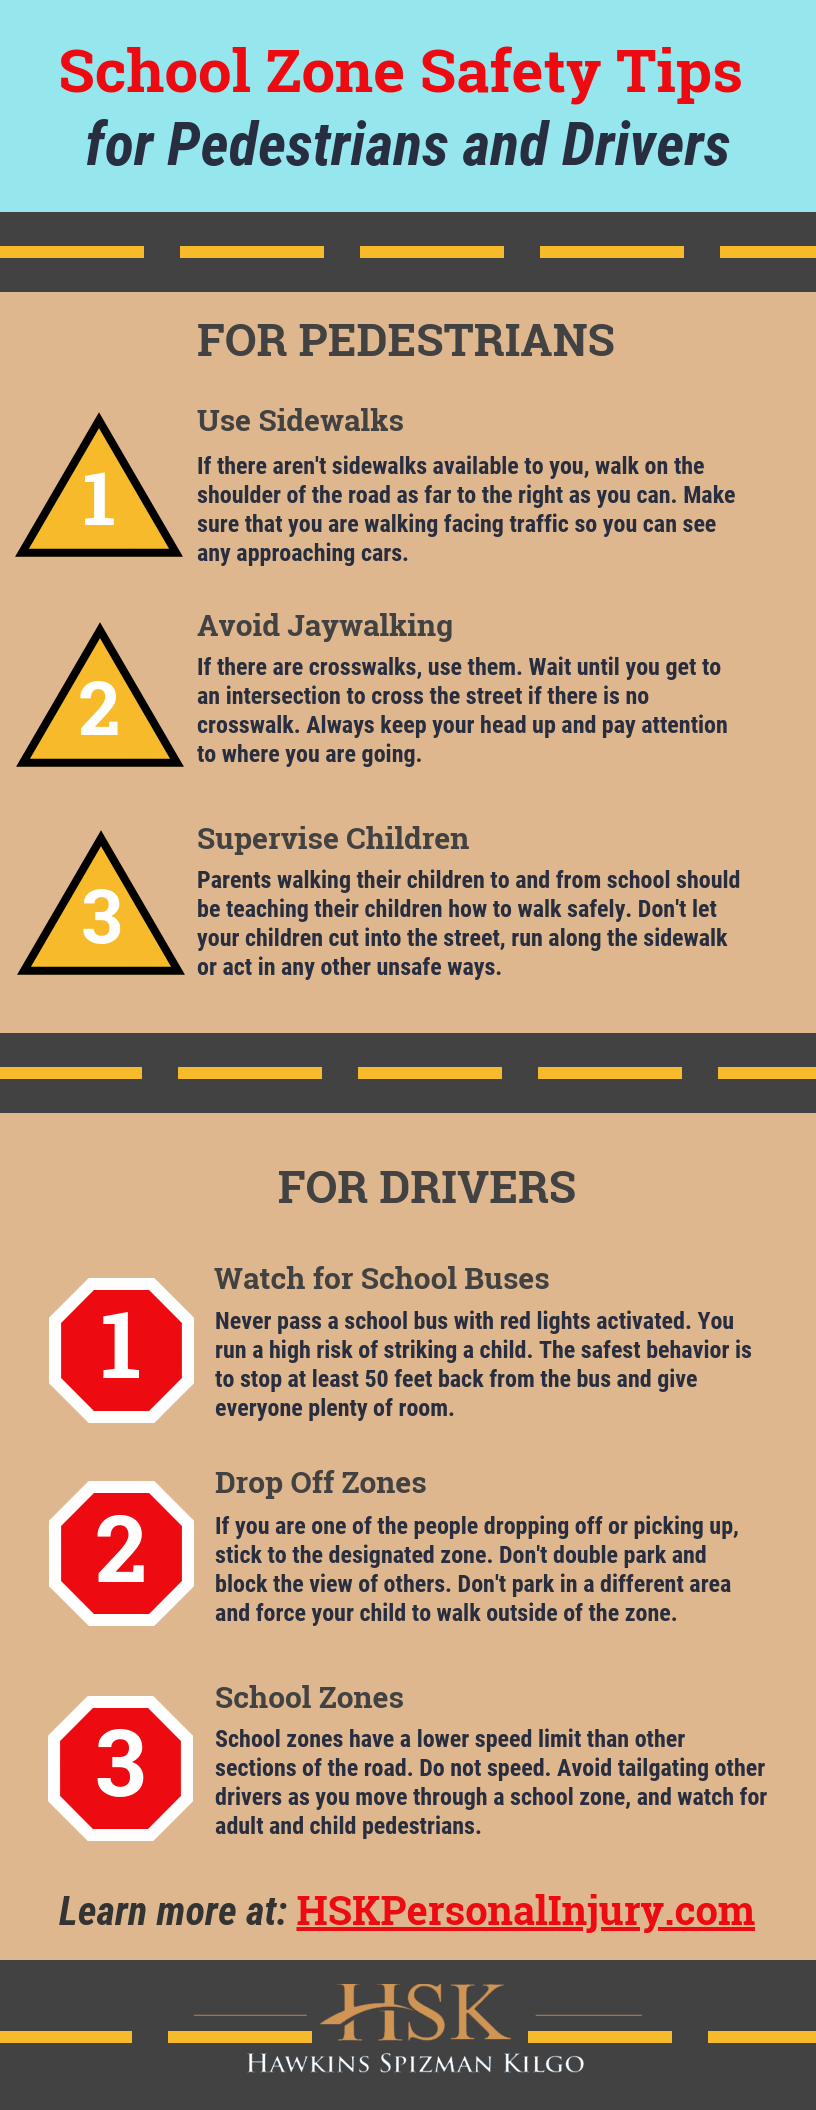 School Zone Safety Tips for Pedestrians and Drivers infographic